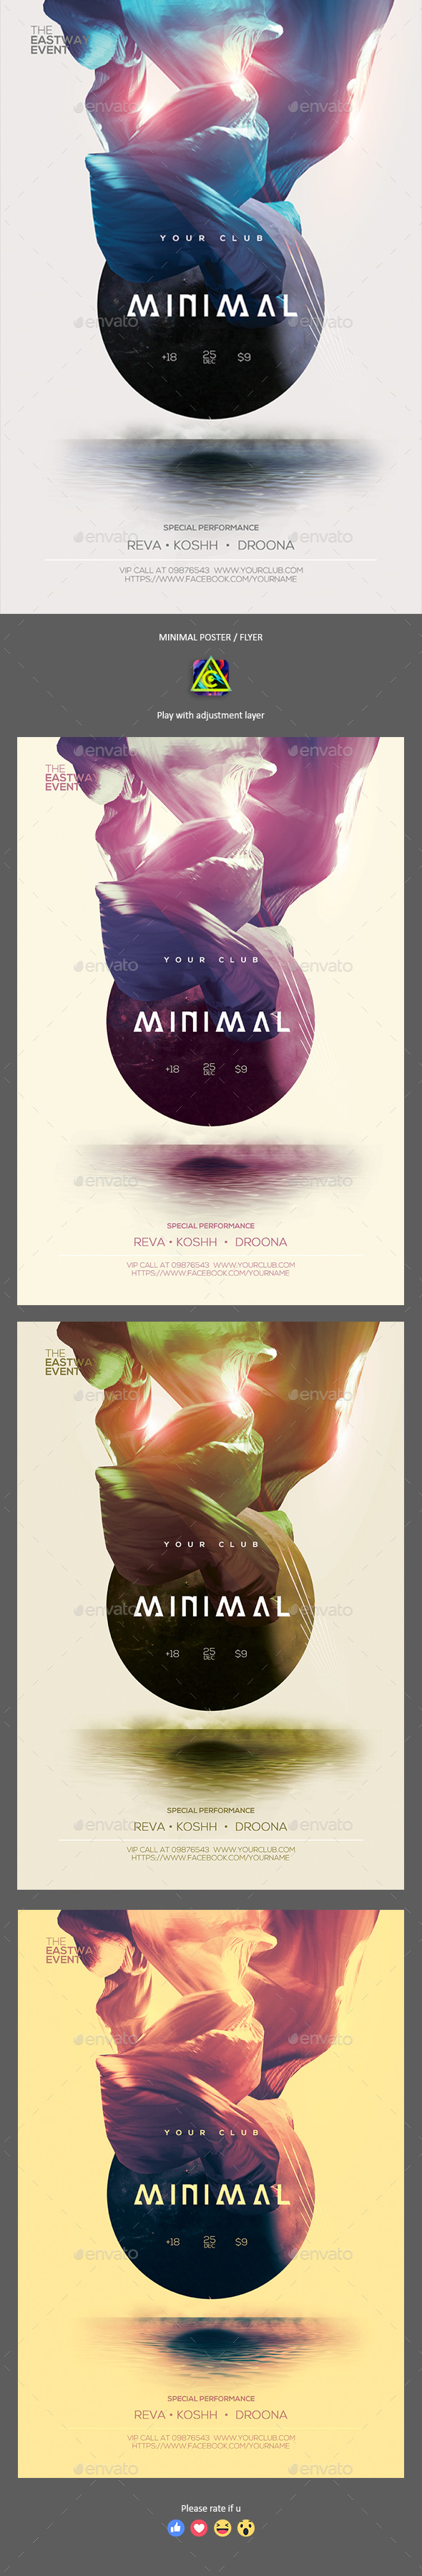 Minimal Party Poster / Flyer - Clubs & Parties Events